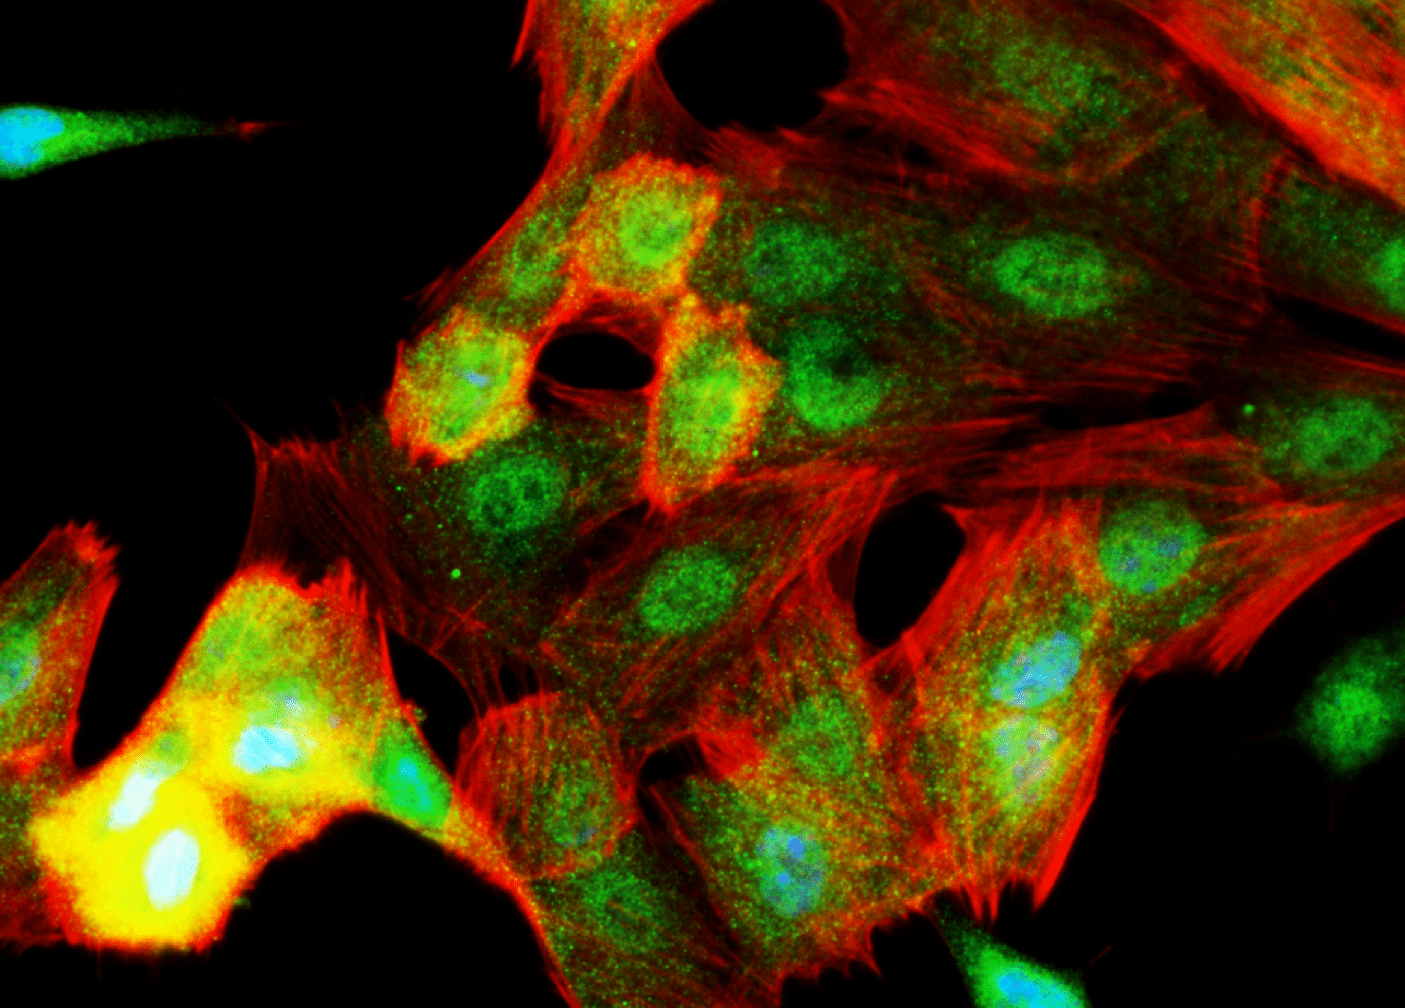 ret-cells_credit_chakravartilab